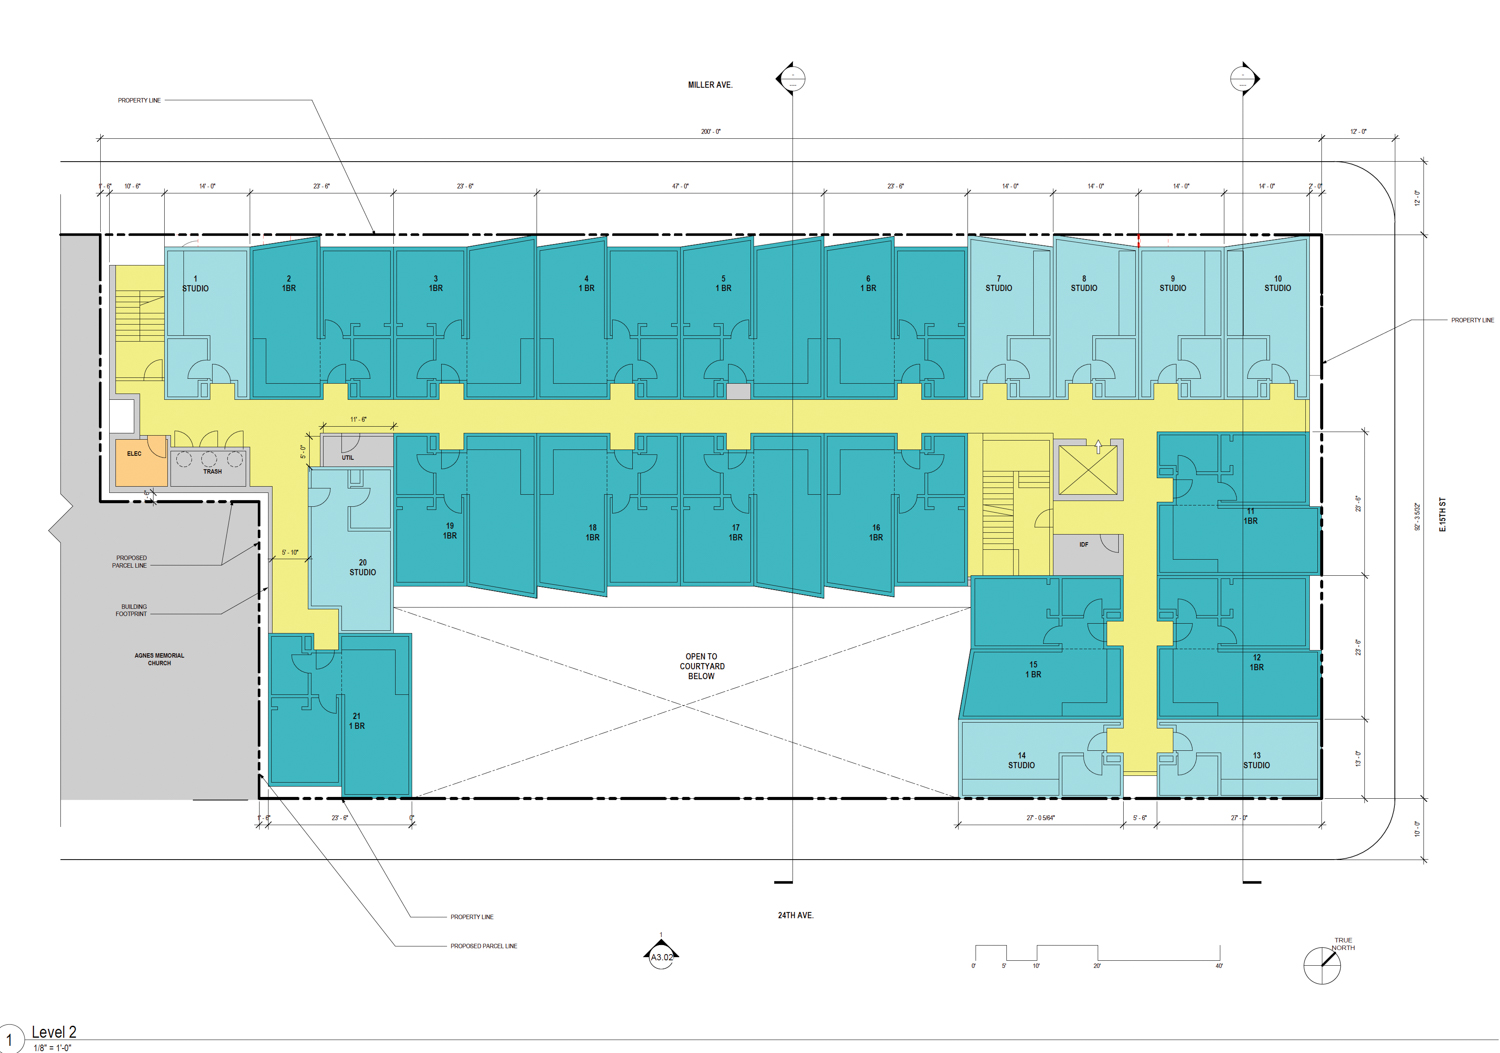 2372 International Boulevard second-level floor plan, rendering by HKIT Architects